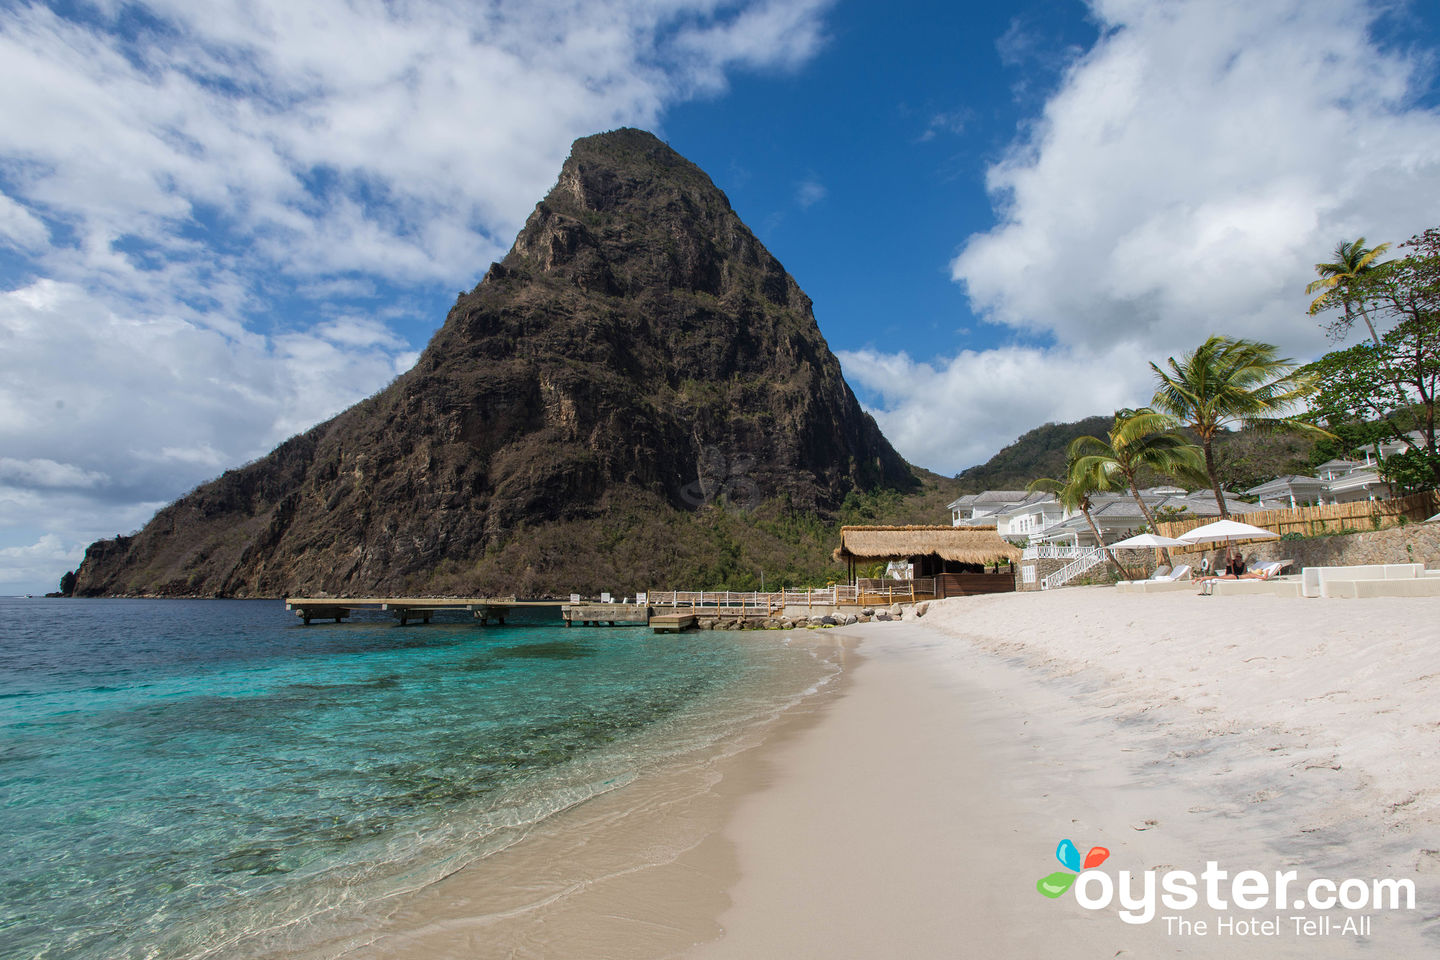 Sugar Beach, A Viceroy Resort, St. Lucia/Oyster